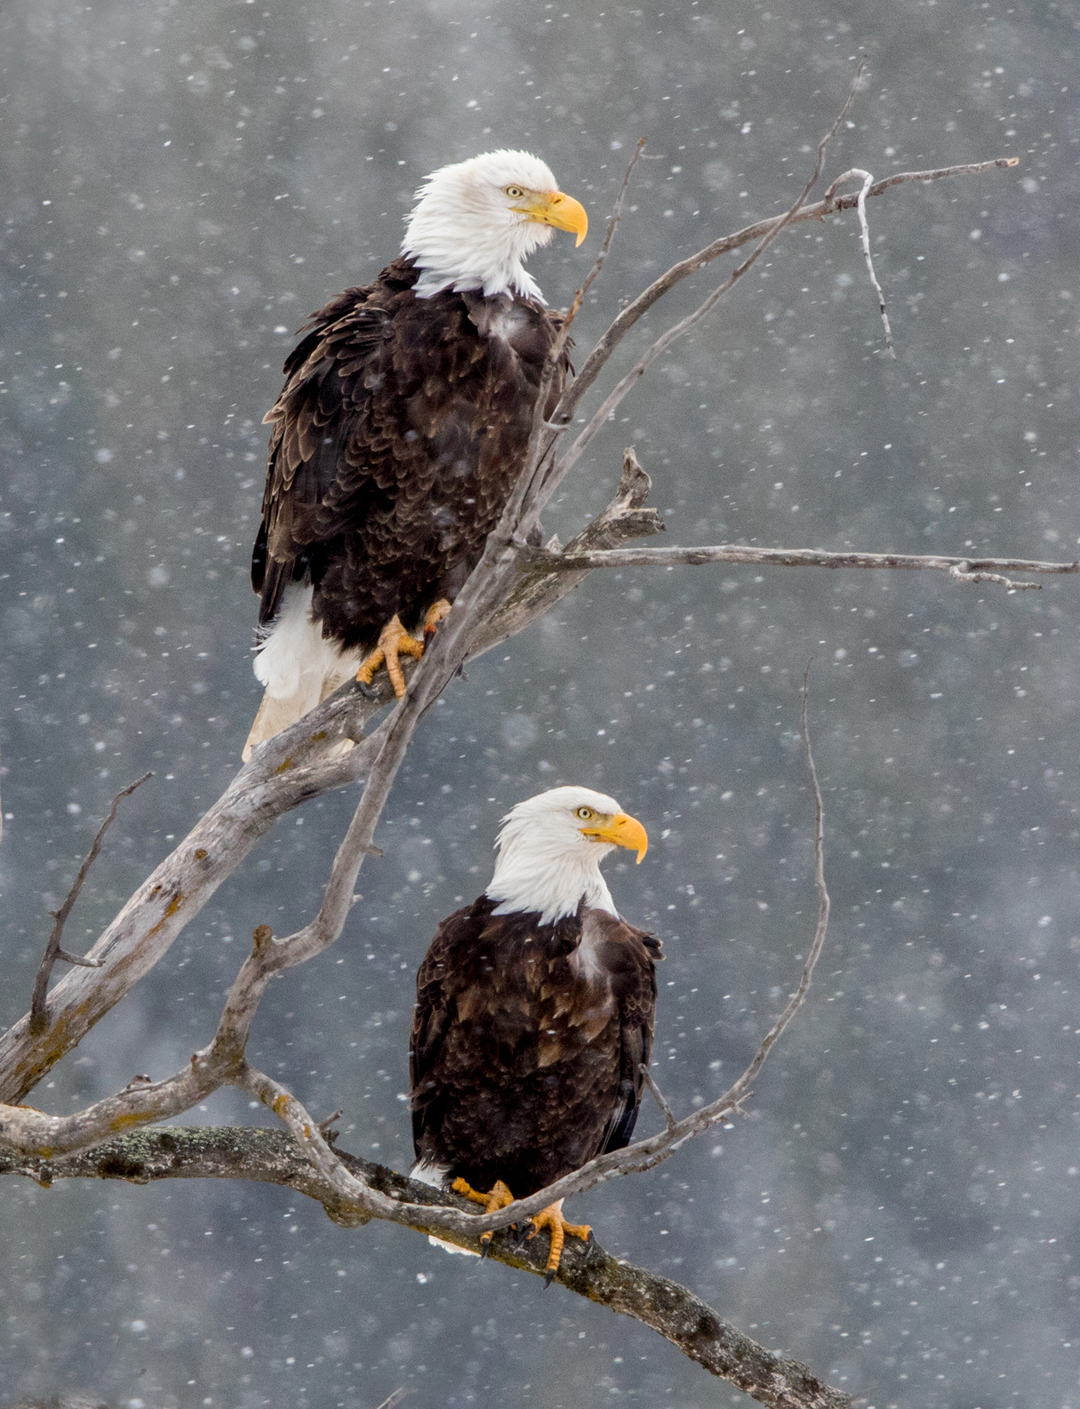 With falling snow and a darkened background, two bald eagles perch in the cottonwood tree.